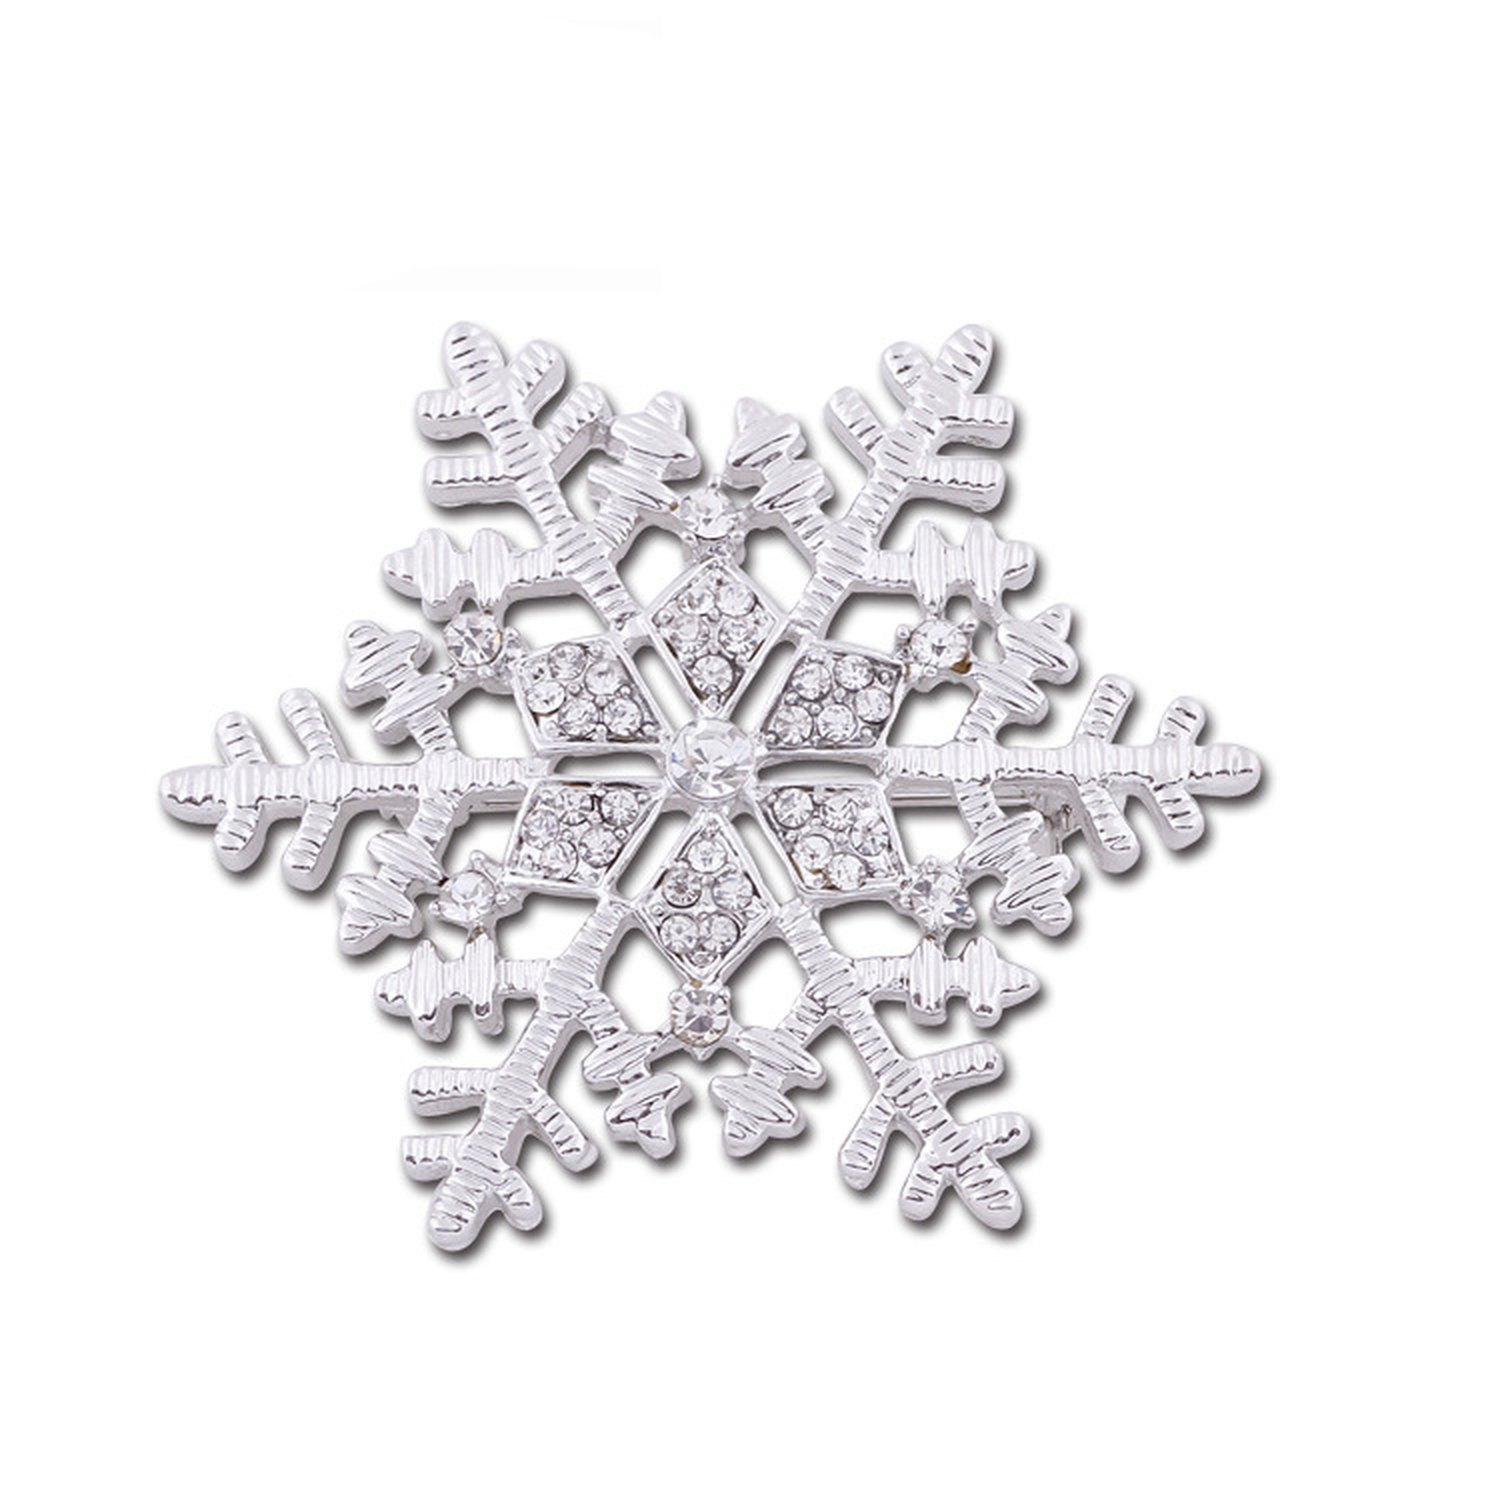 Japanese and Korean fashion accessories retro elegance exaggerated large diamond snowflake female brooch corsage annual meeting accessories,Silver